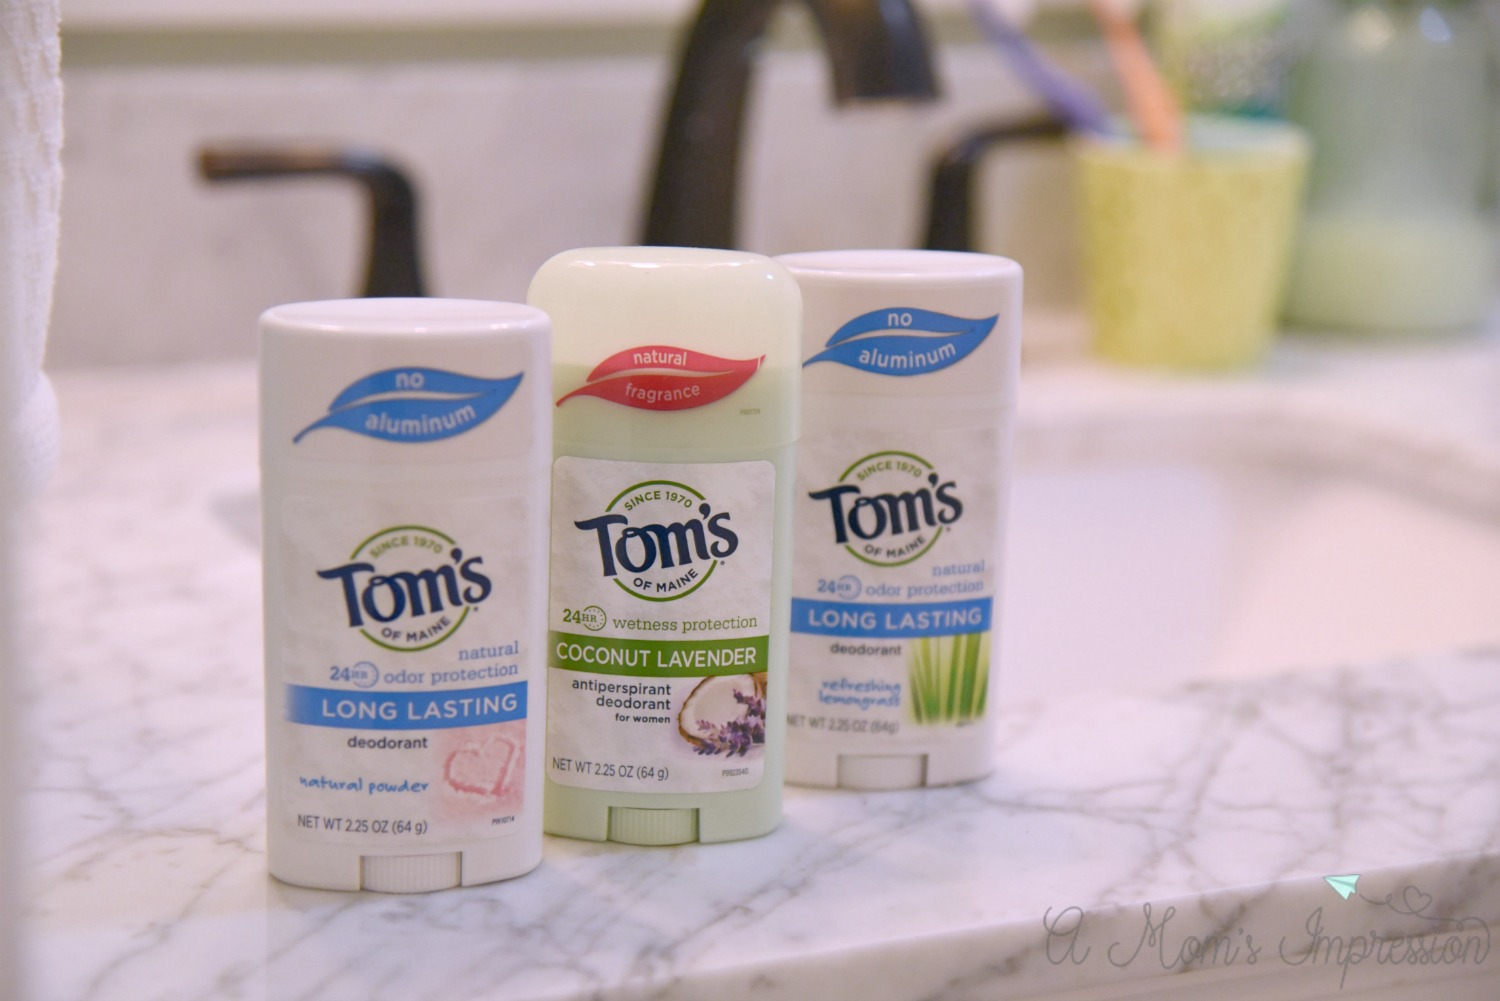 toms of maine natural deodorant for women